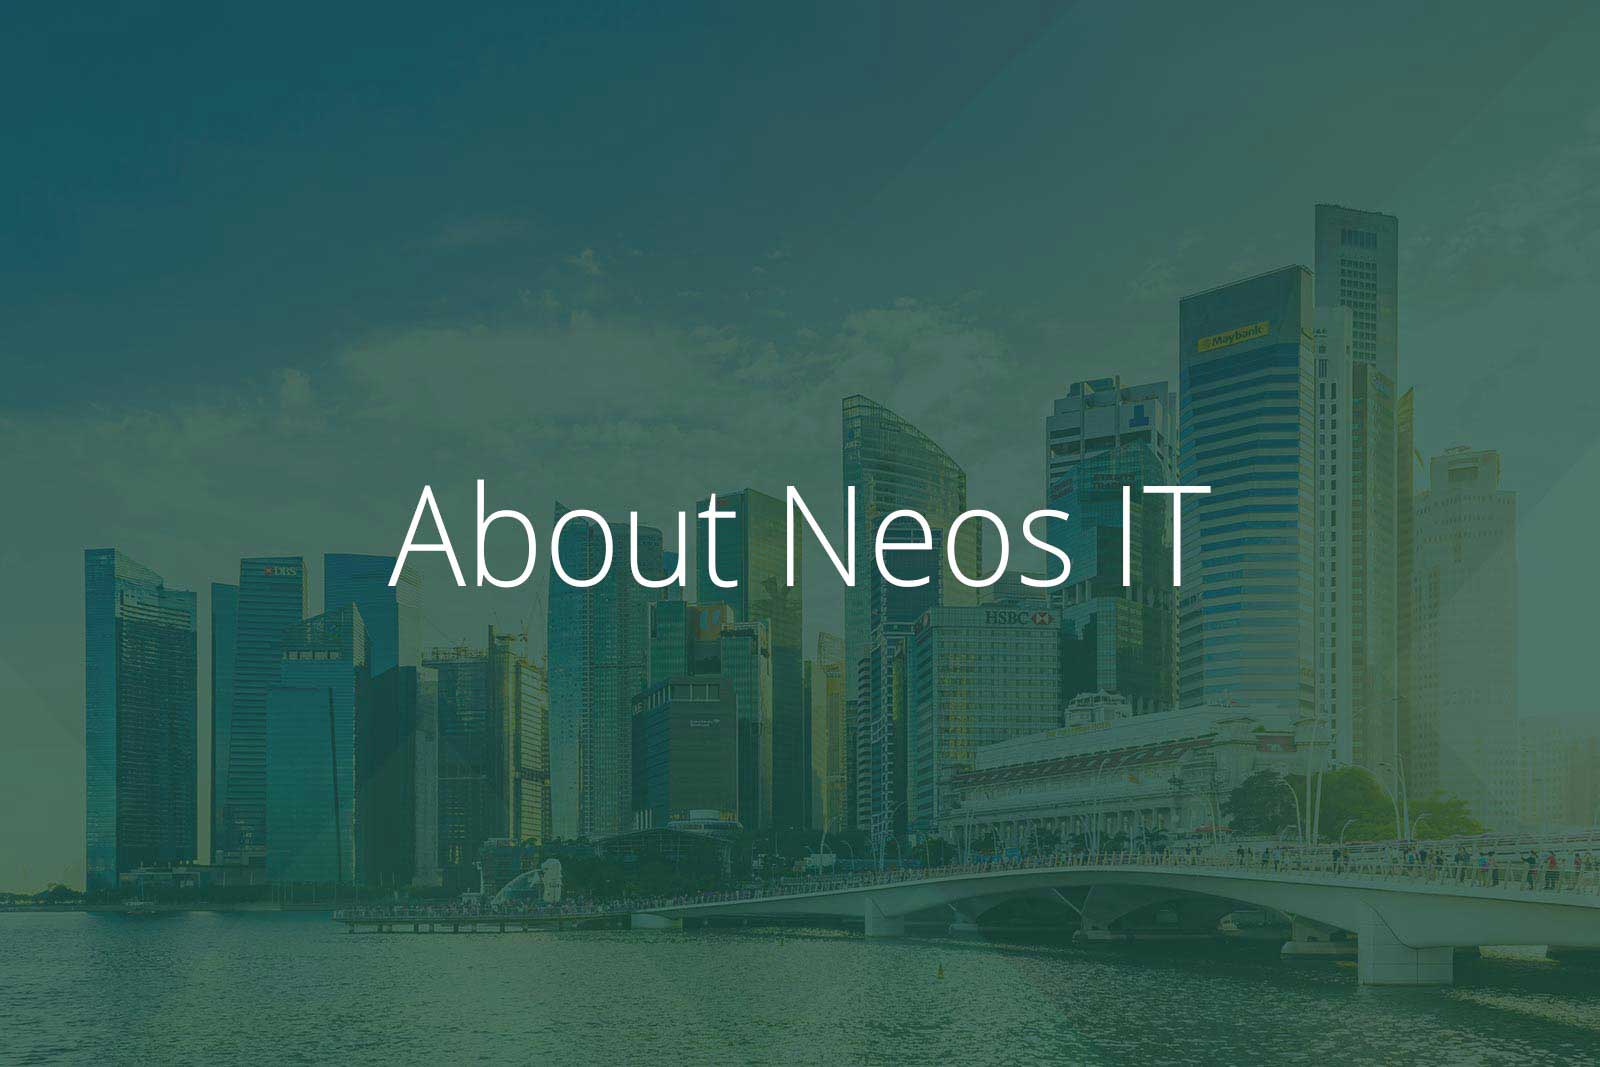 About Neos IT Services, Image Singapore